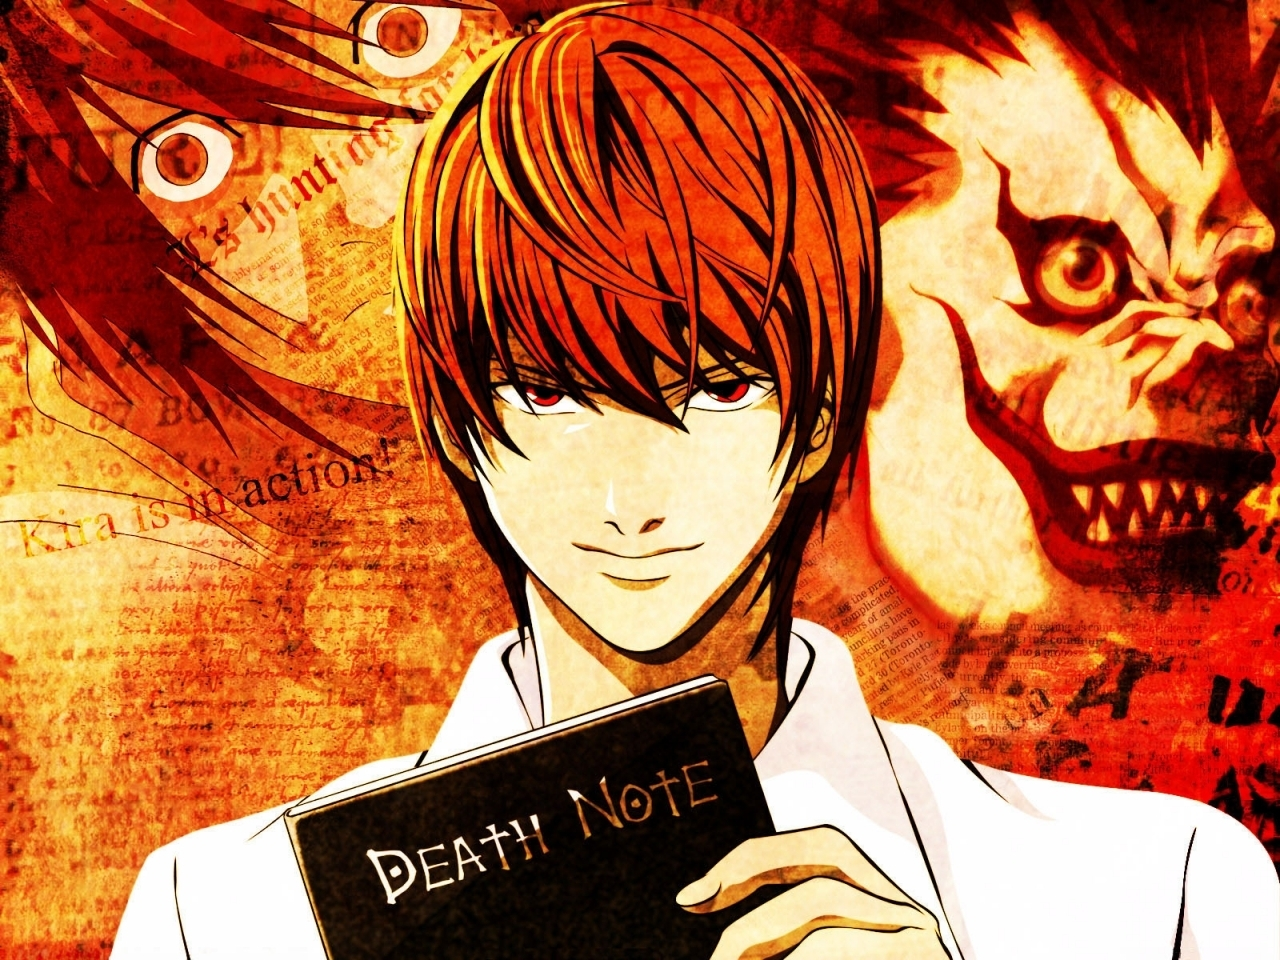 Light Kira Light Yagami Death Note Hd 346886 Hd